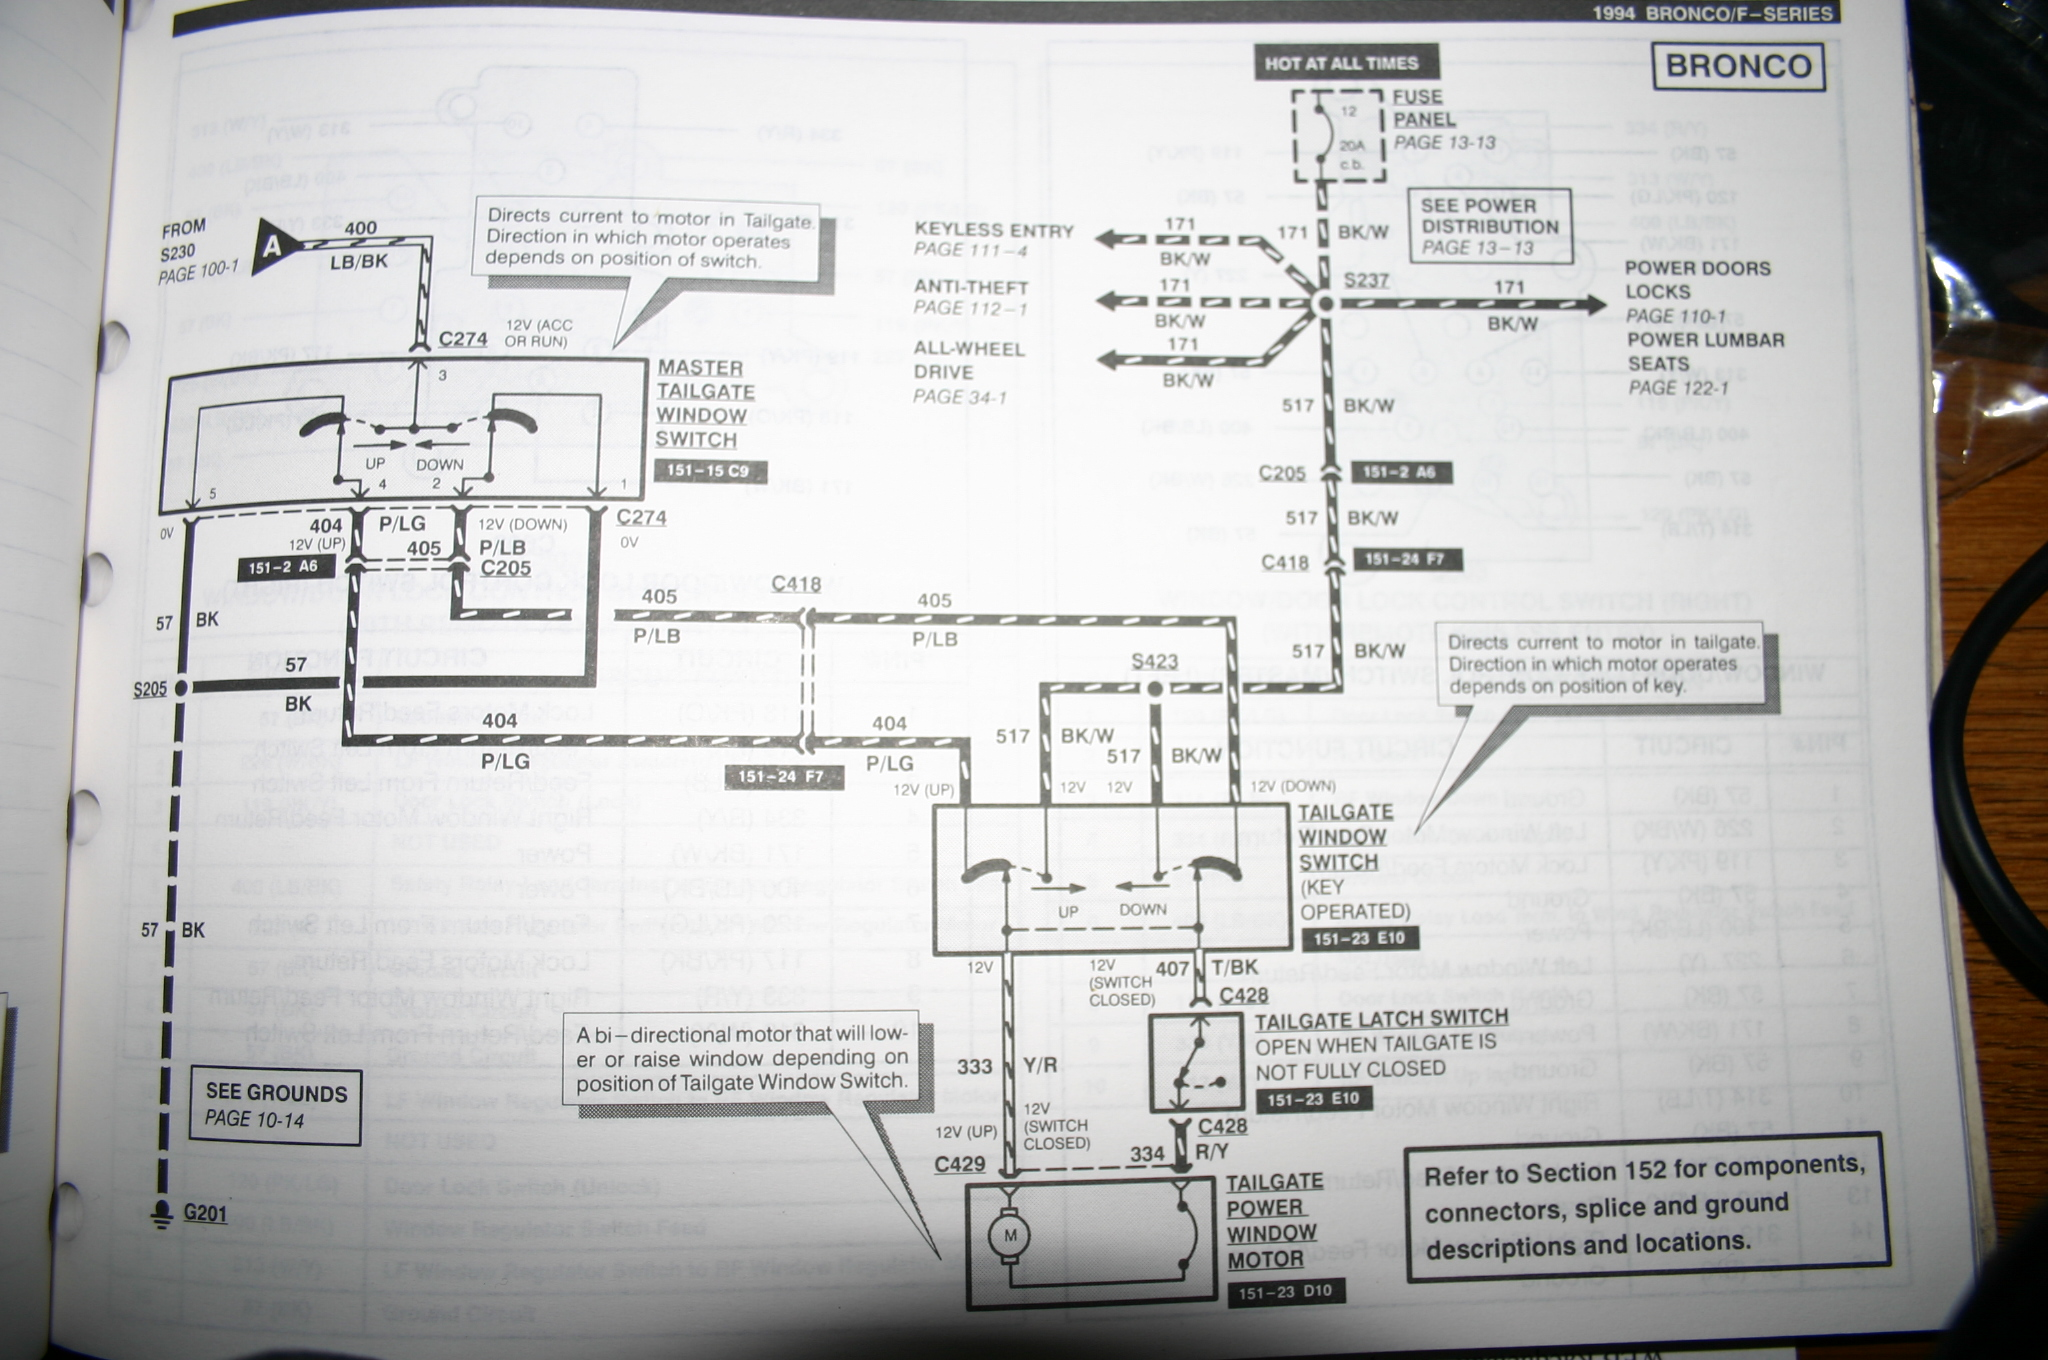 94 ford bronco wiring diagram - wiring diagram protocol-a -  protocol-a.musikami.it  musikami.it